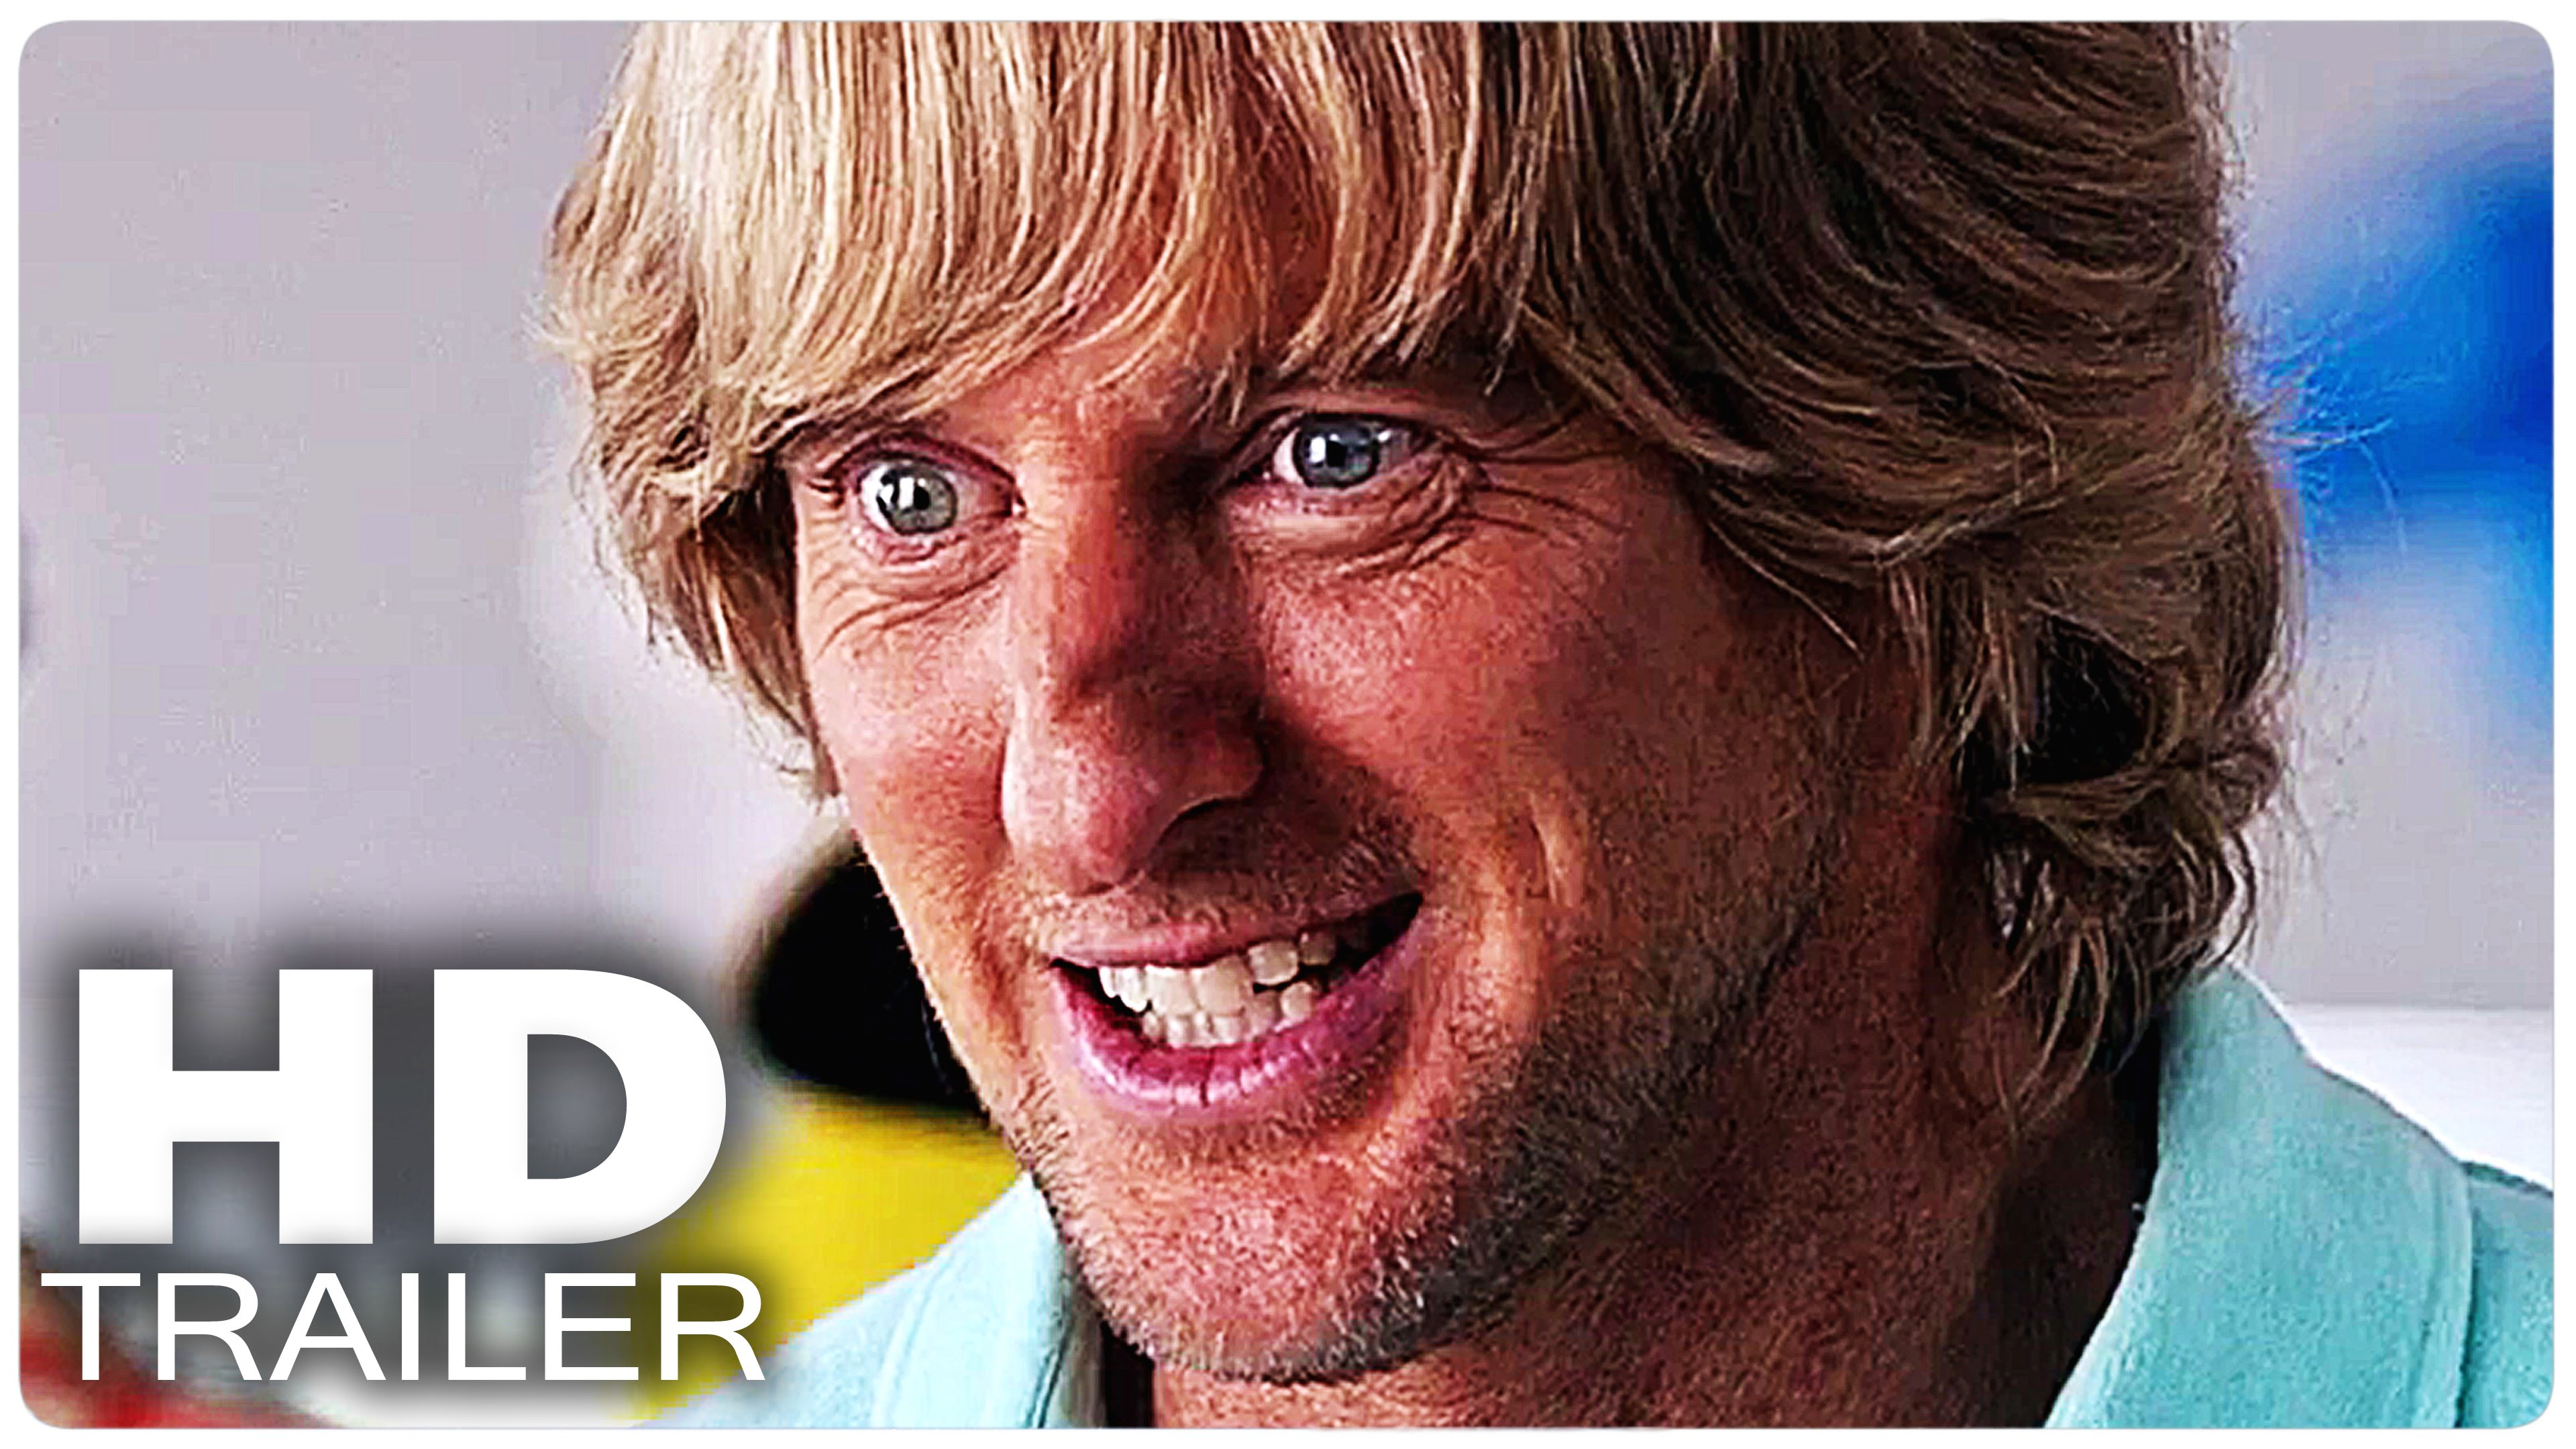 BASTARDS Trailer | Owen Wilson Comedy Movie 2017